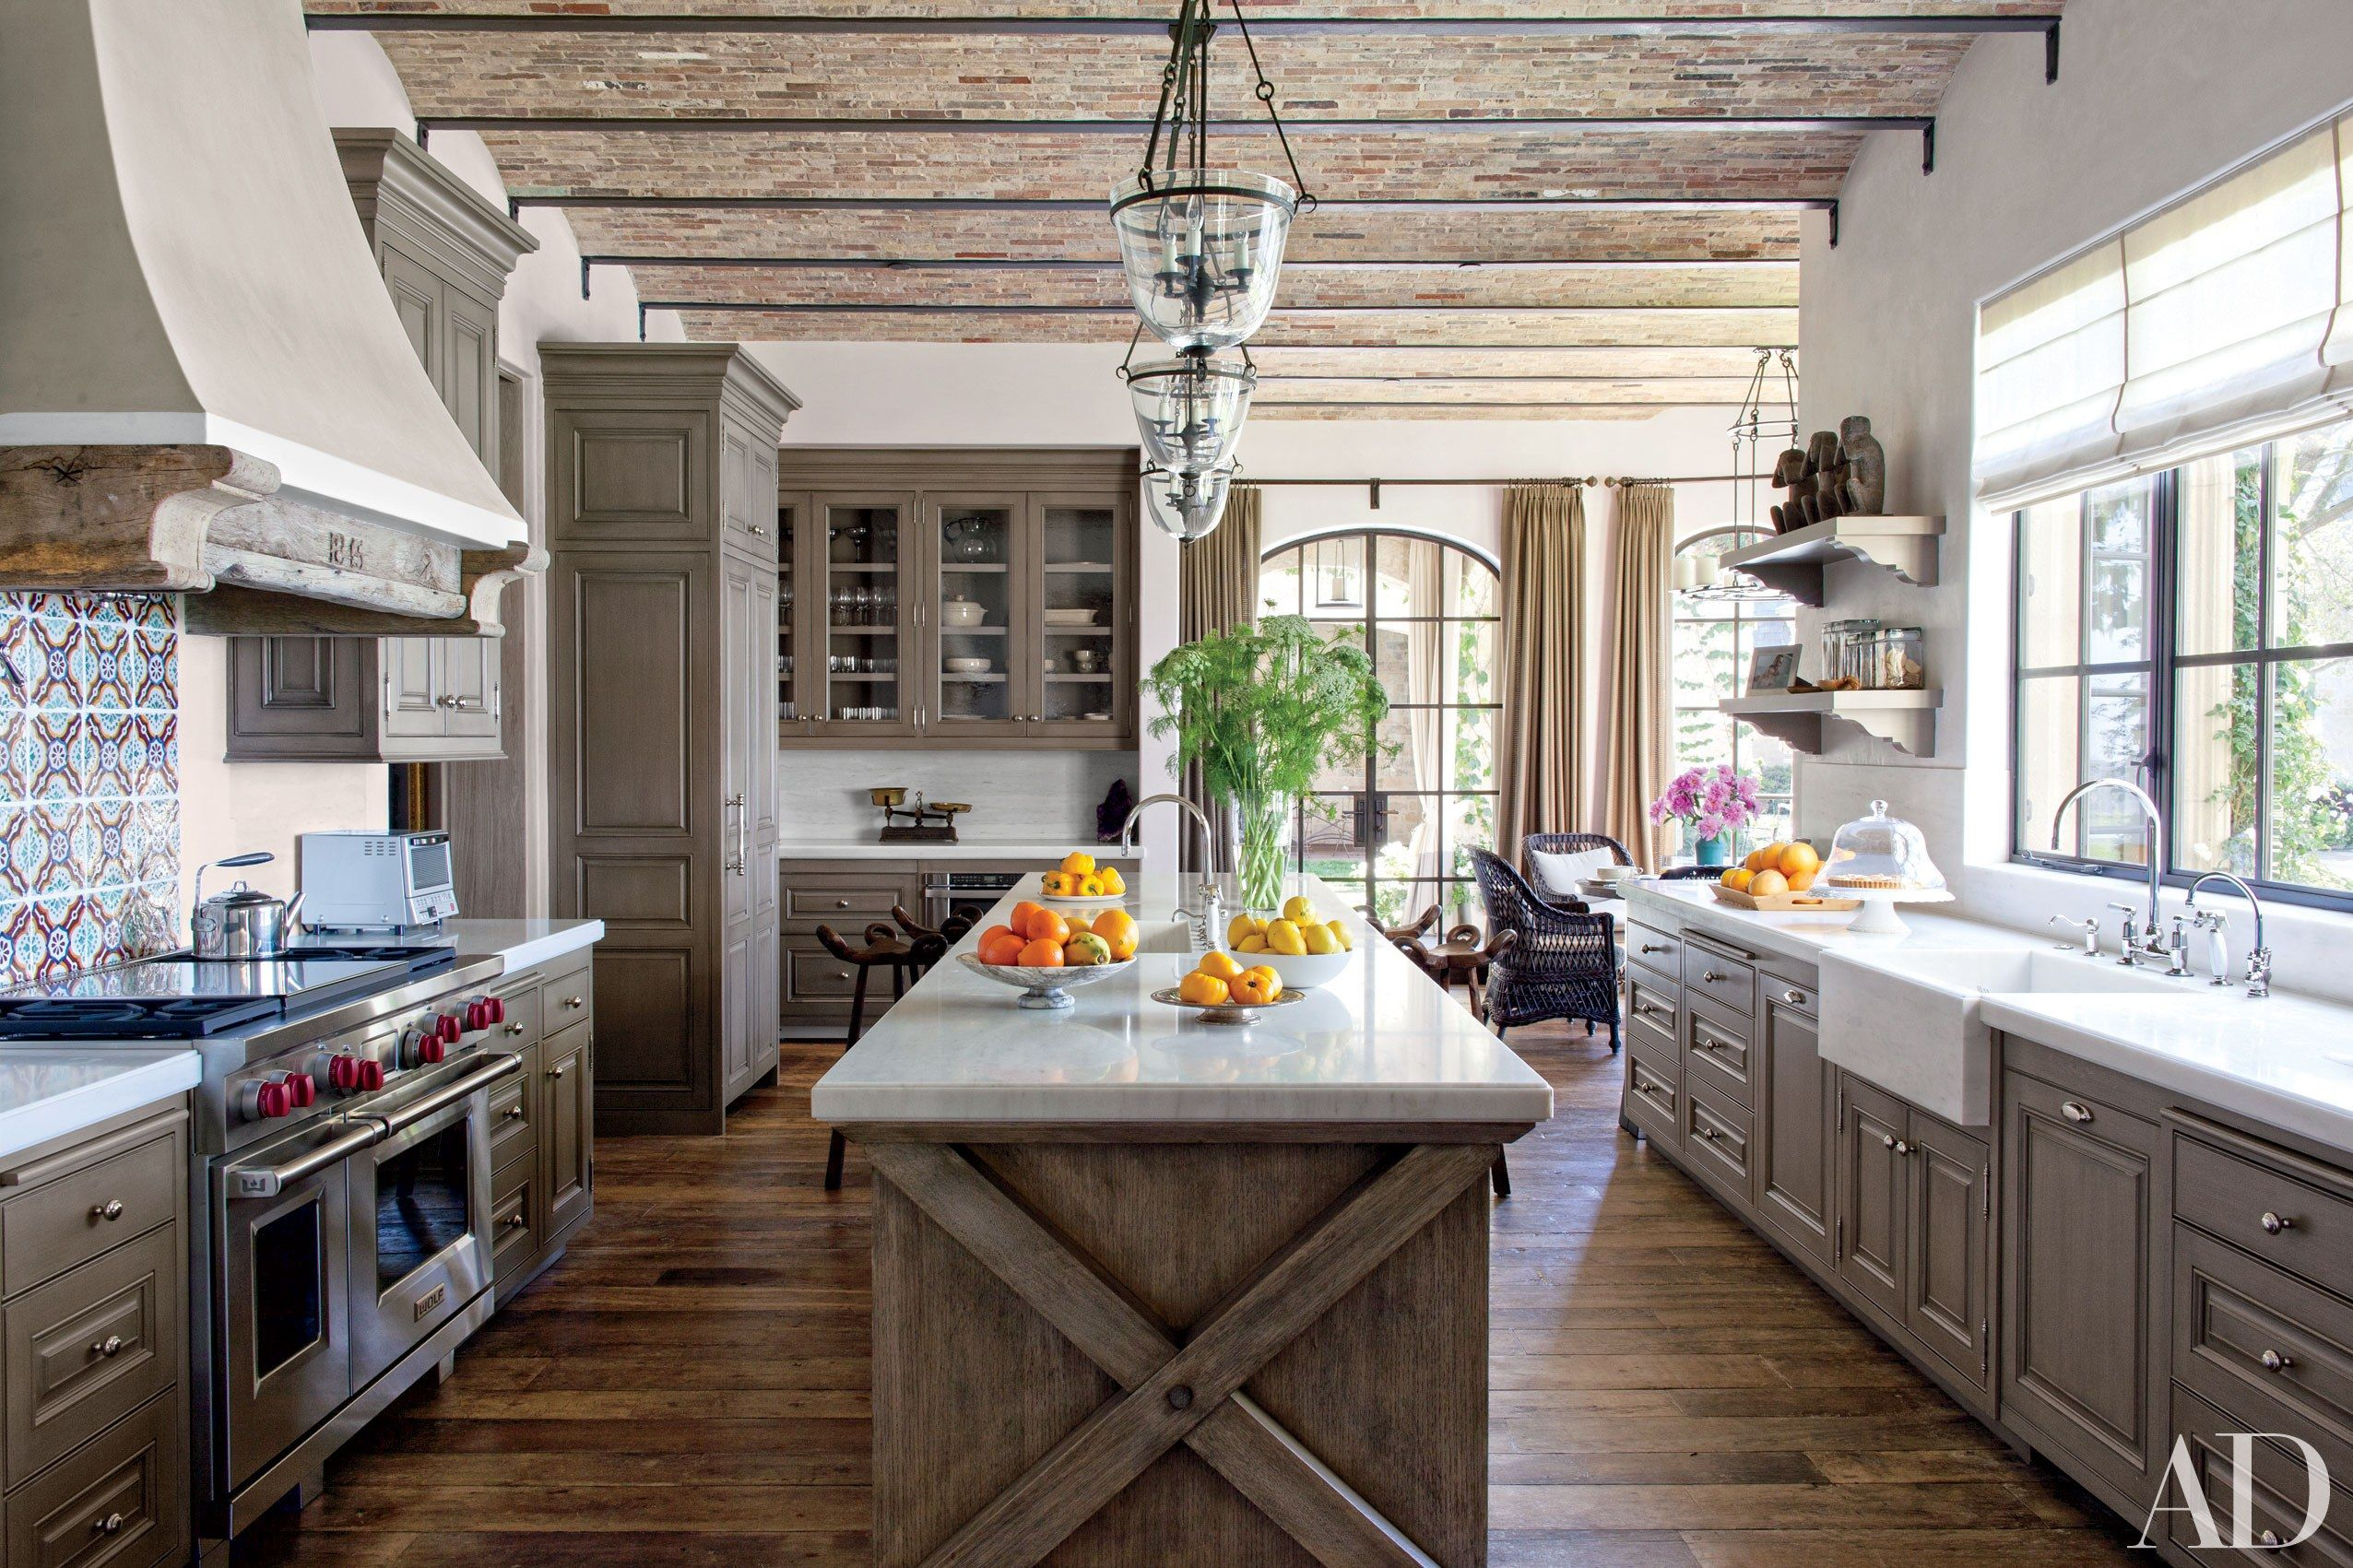 29 Celebrity Kitchens With Incredible Style | Architectural Digest